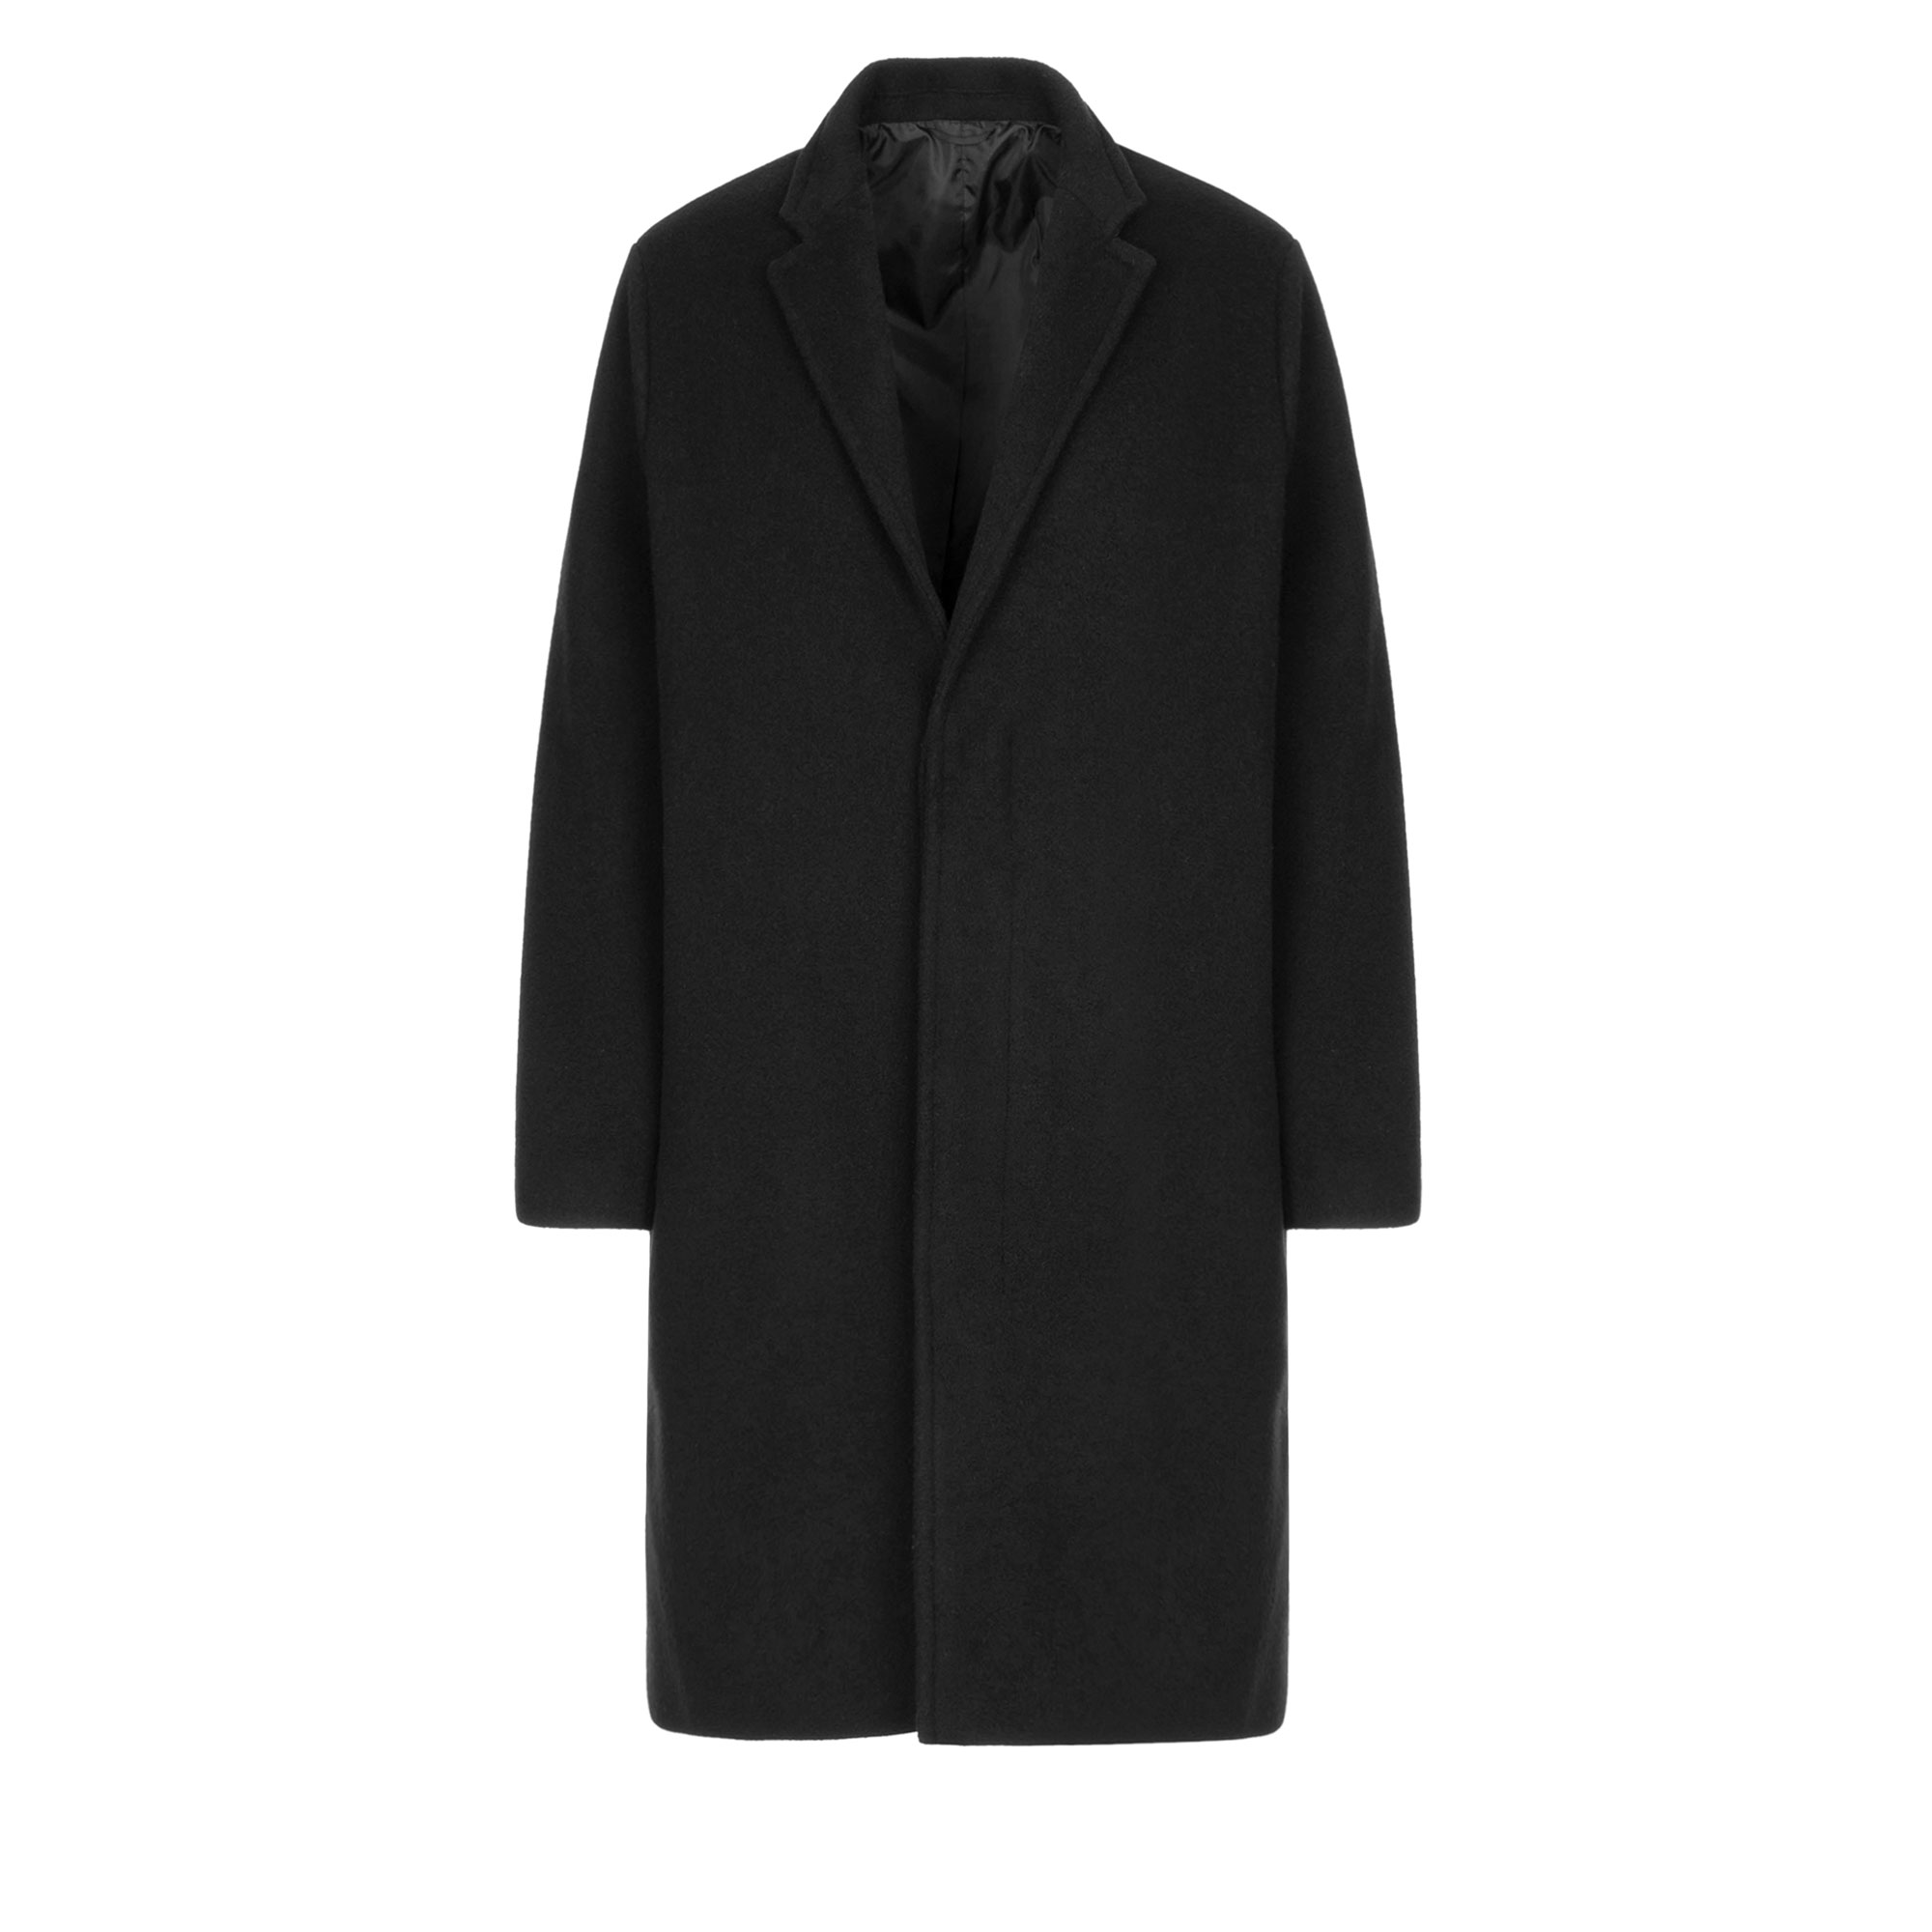 wool single coat / black